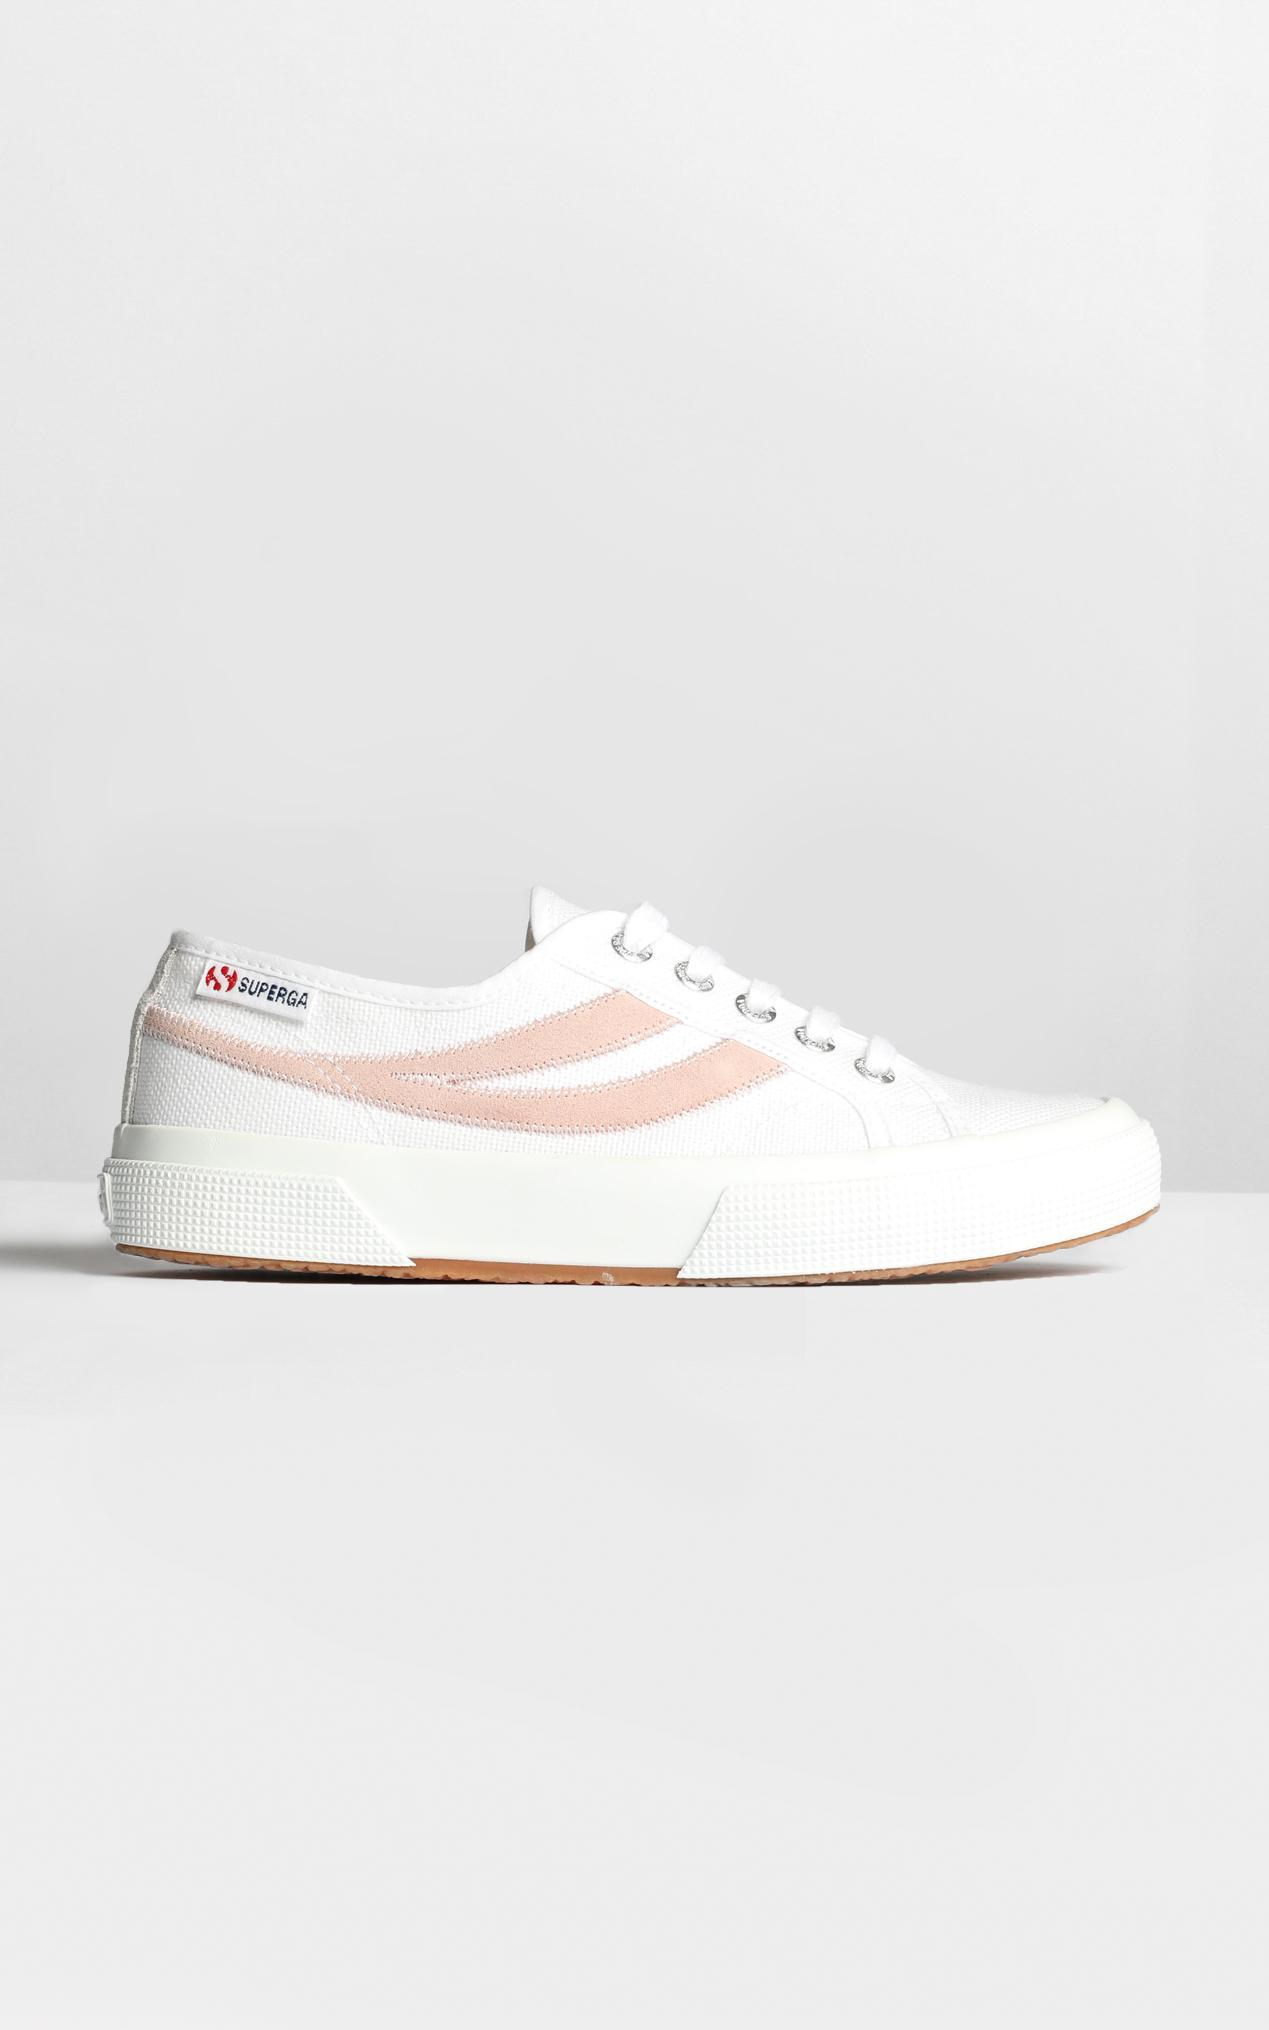 Superga - 2953 Swollowtail Cotusuede Sneaker in white and pink - 5, White, hi-res image number null